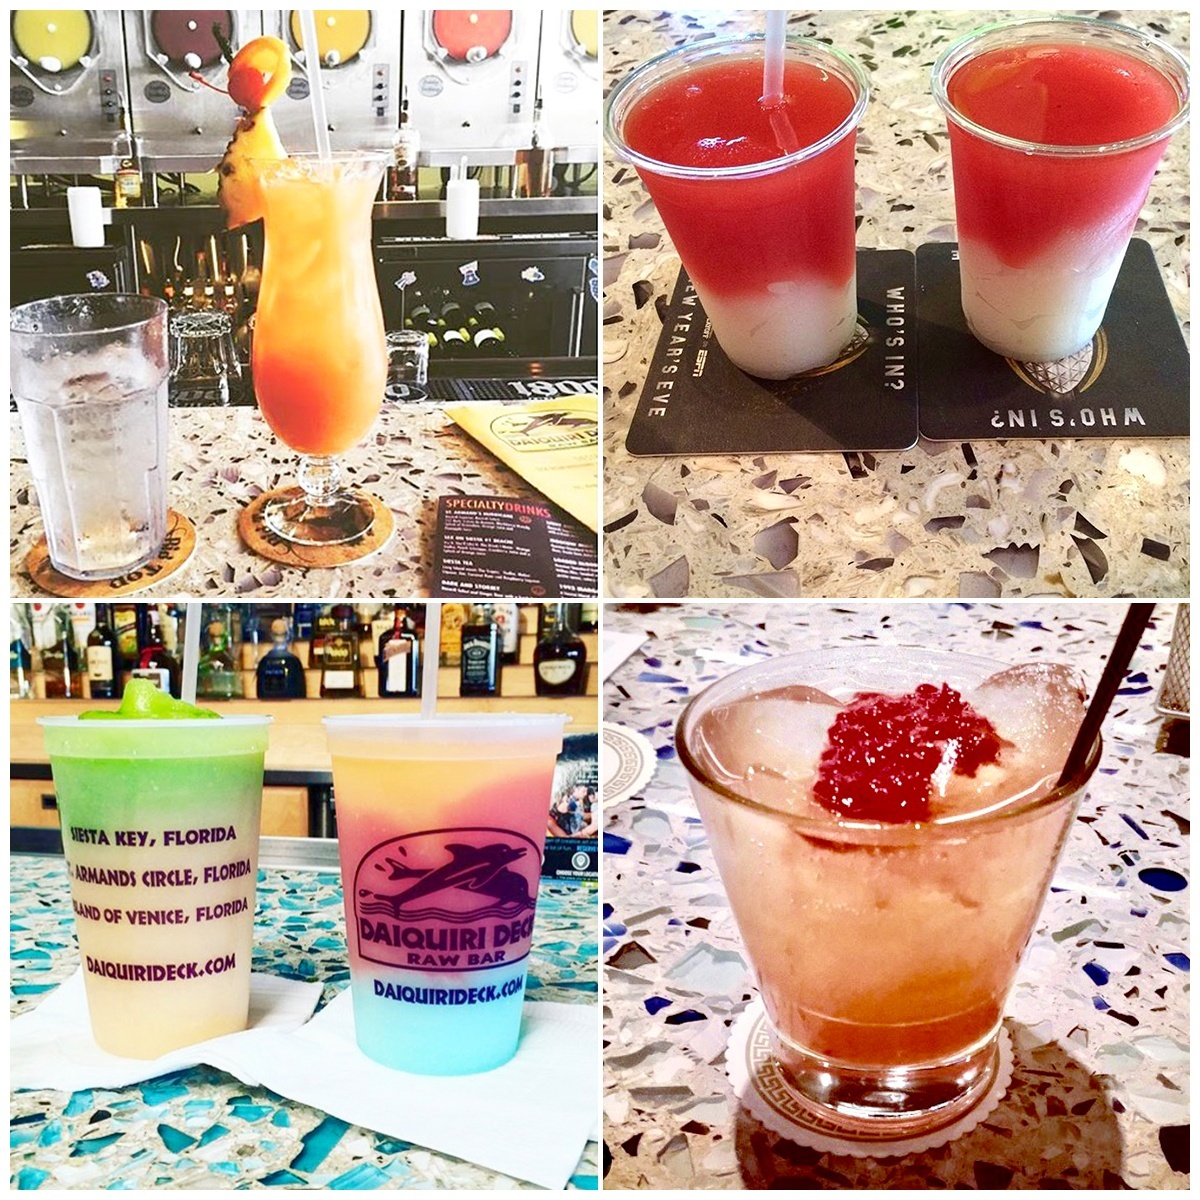 cocktails-on-vetrazzo-counters-instagram